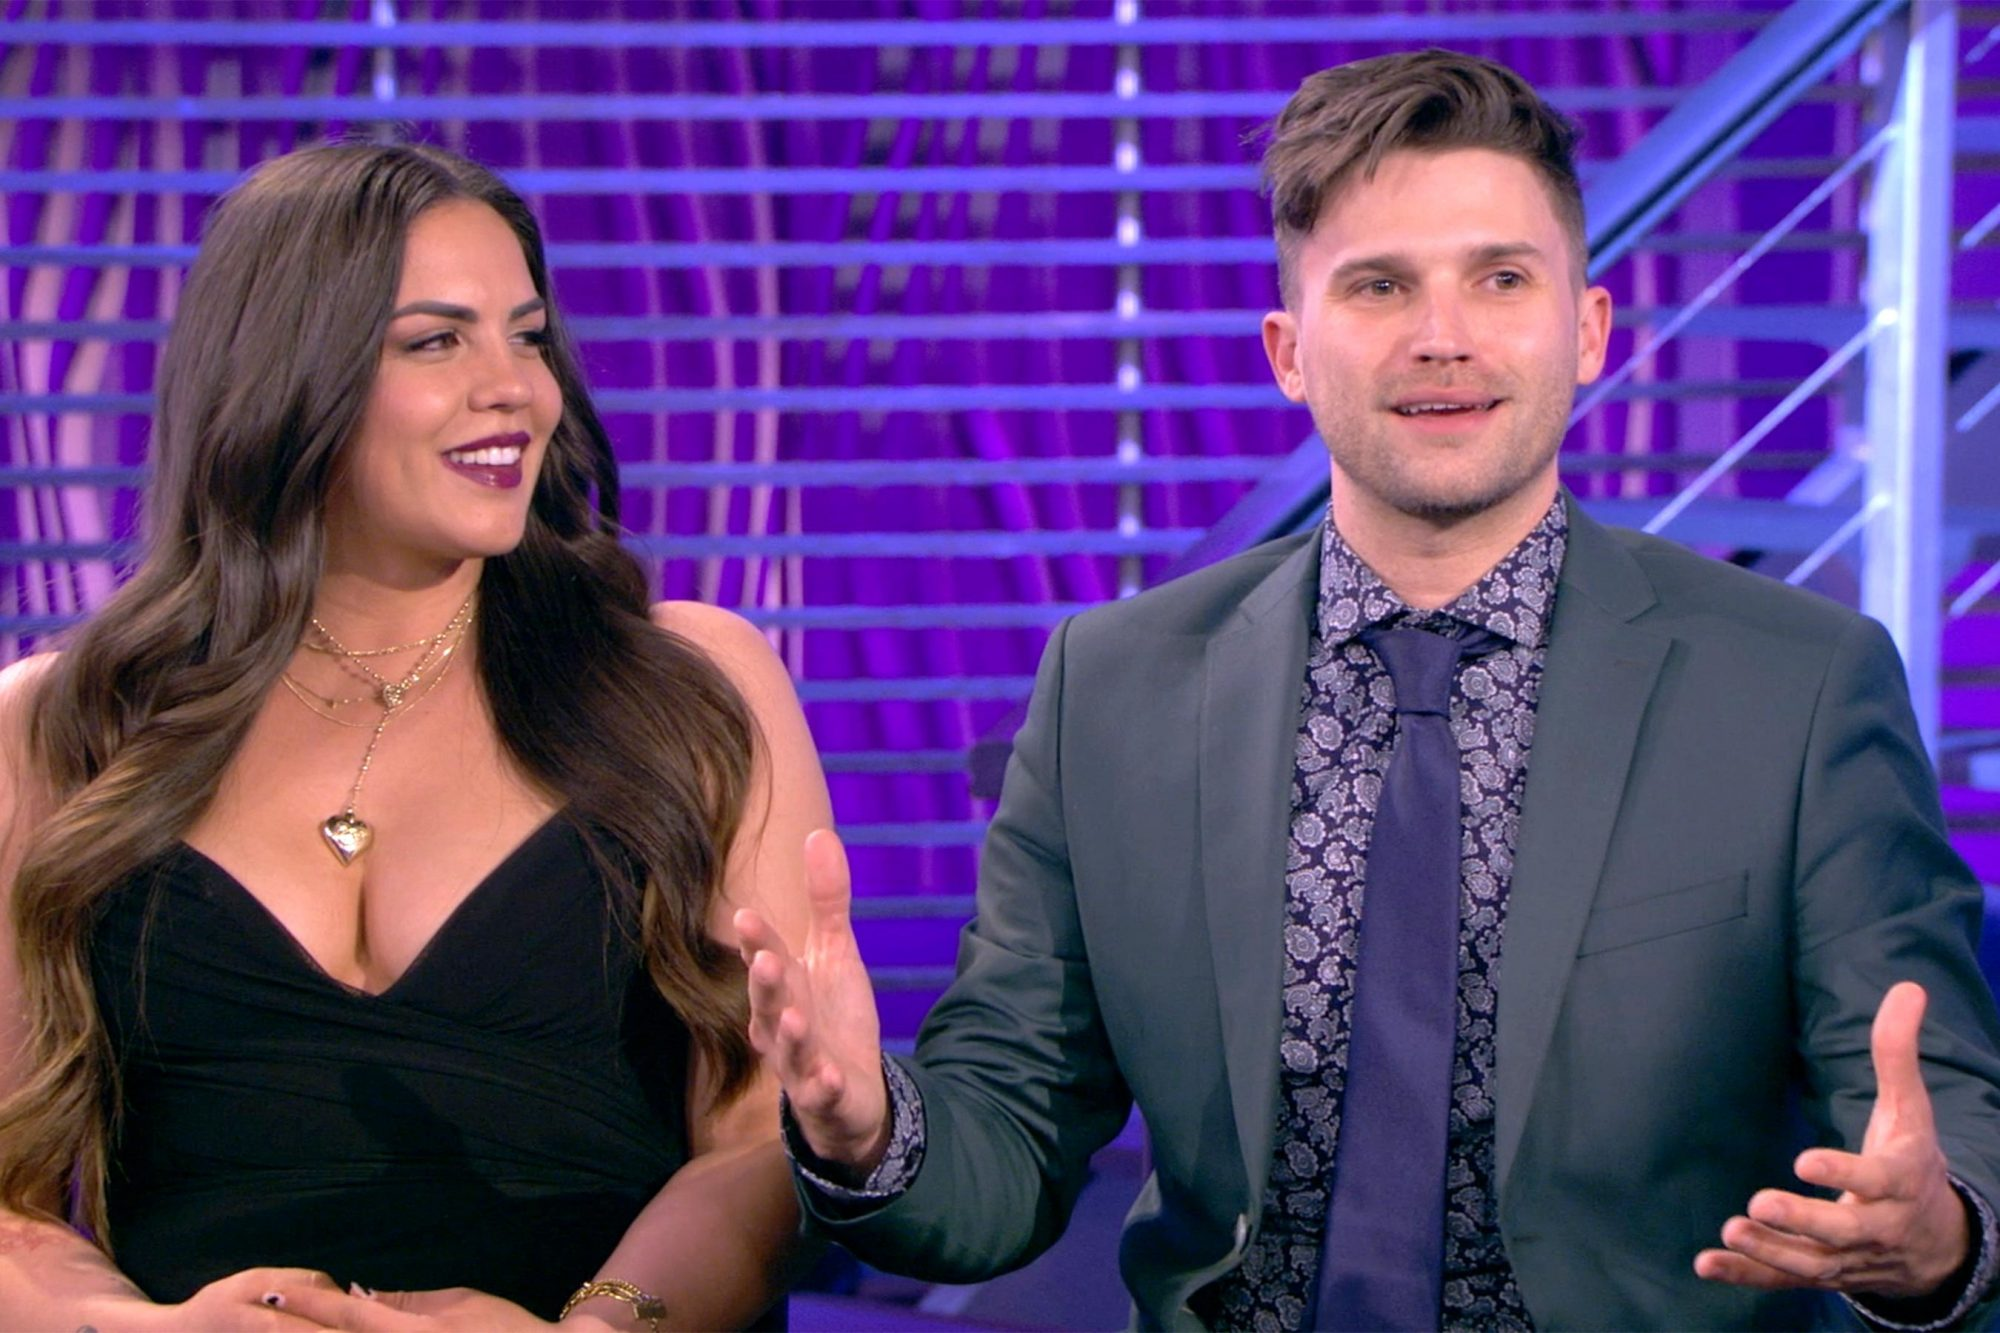 Vanderpump Rules Mon 9/8c Ep 24: Reunion Part 3 Season 7 | Air Date: May 20, 2019 CR: Bravo